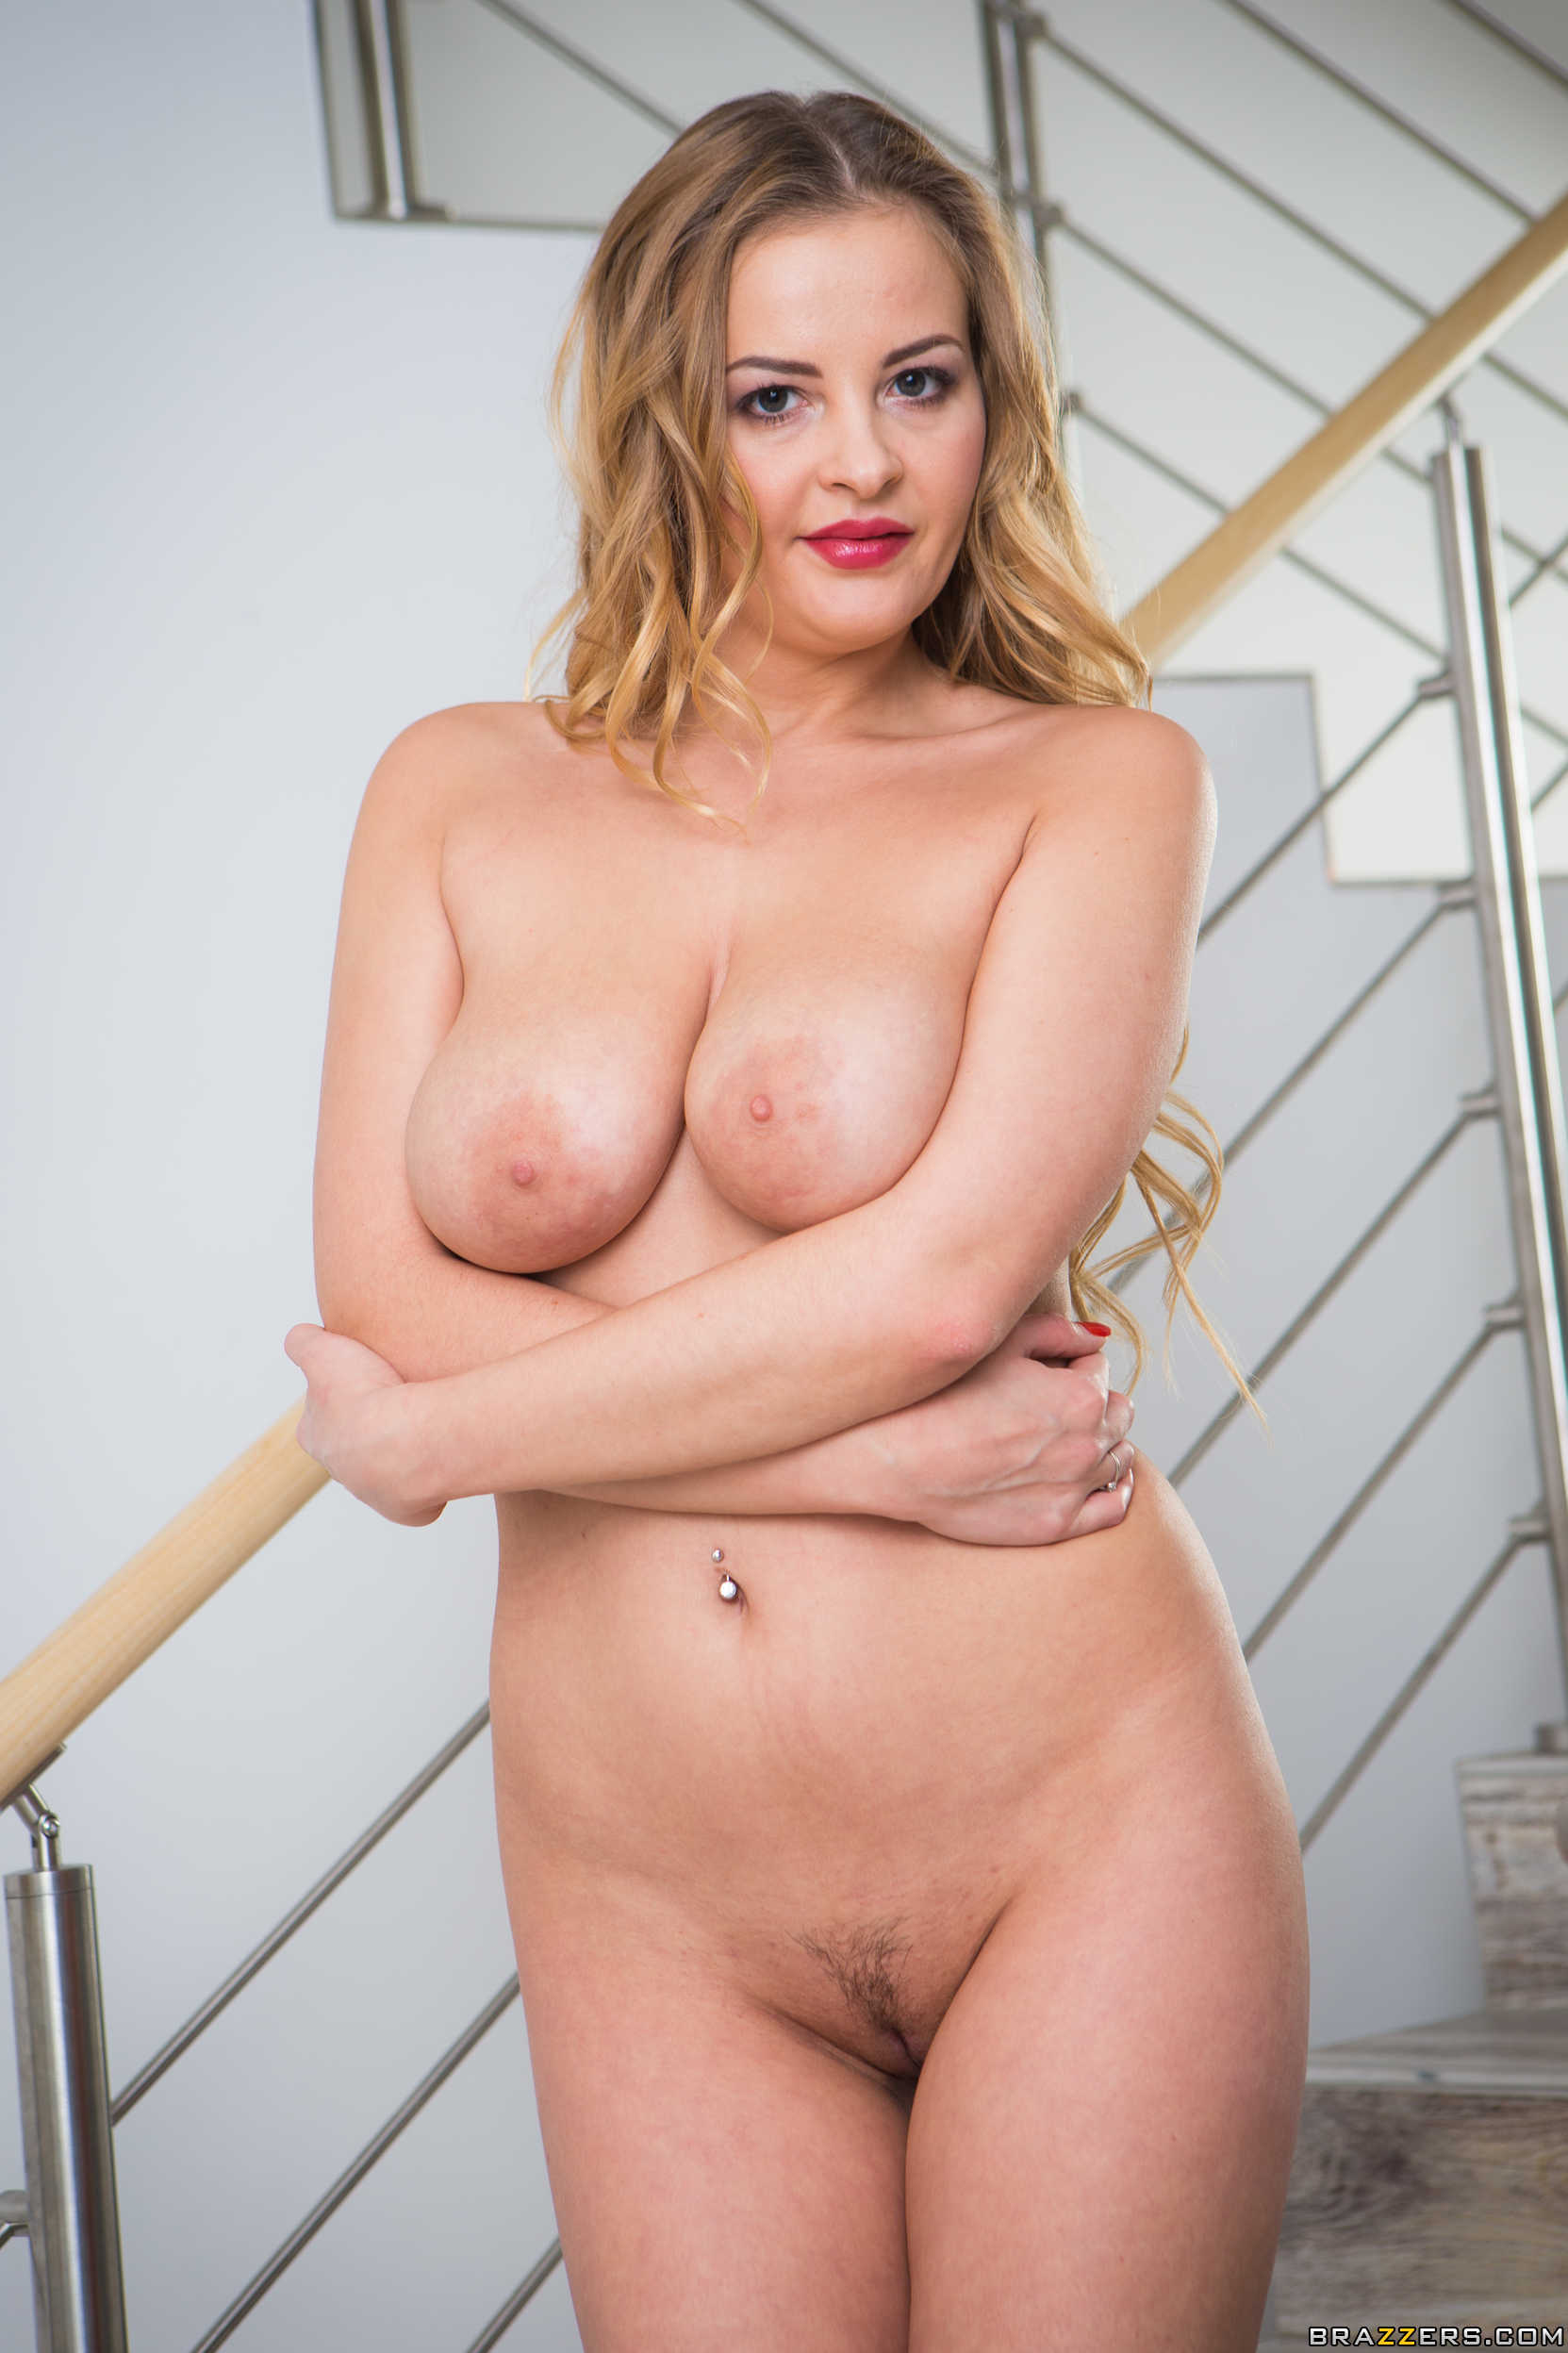 Busty Blonde Candy Alexa - Sexy Gallery Full Photo 181778 -7271